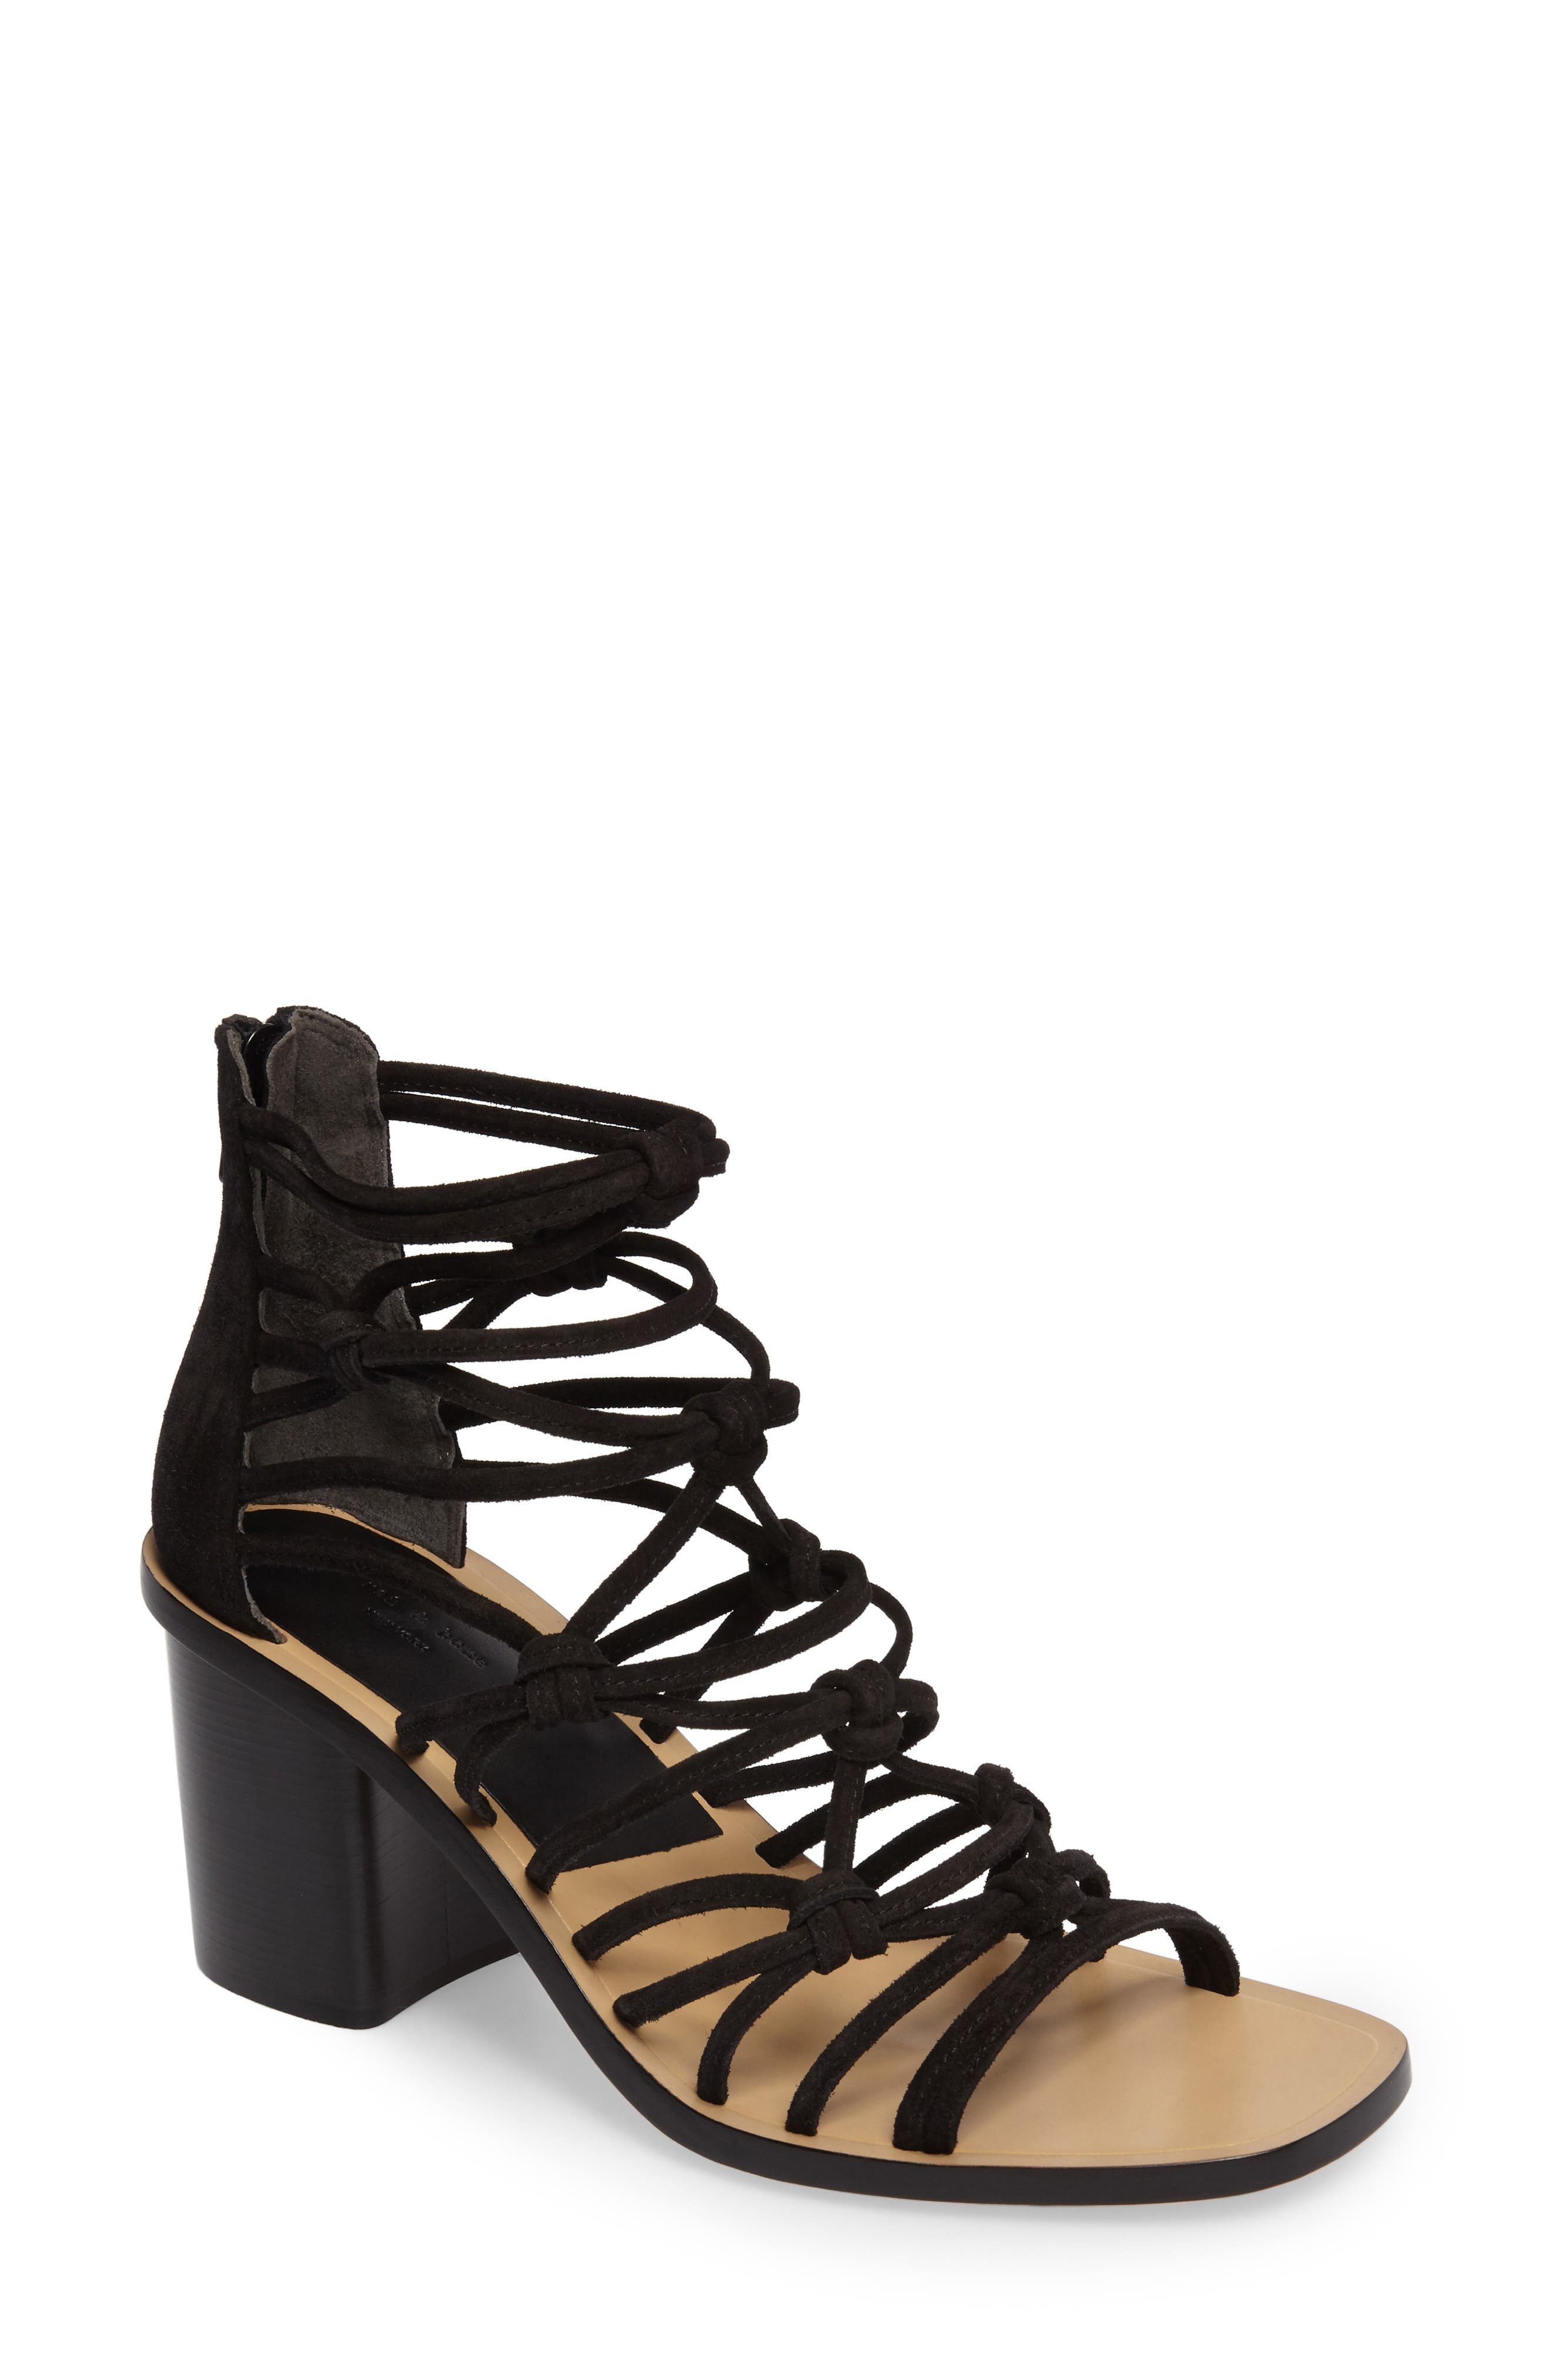 Alternate Image 1 Selected - rag & bone Camille Knotted Strappy Sandal (Women)